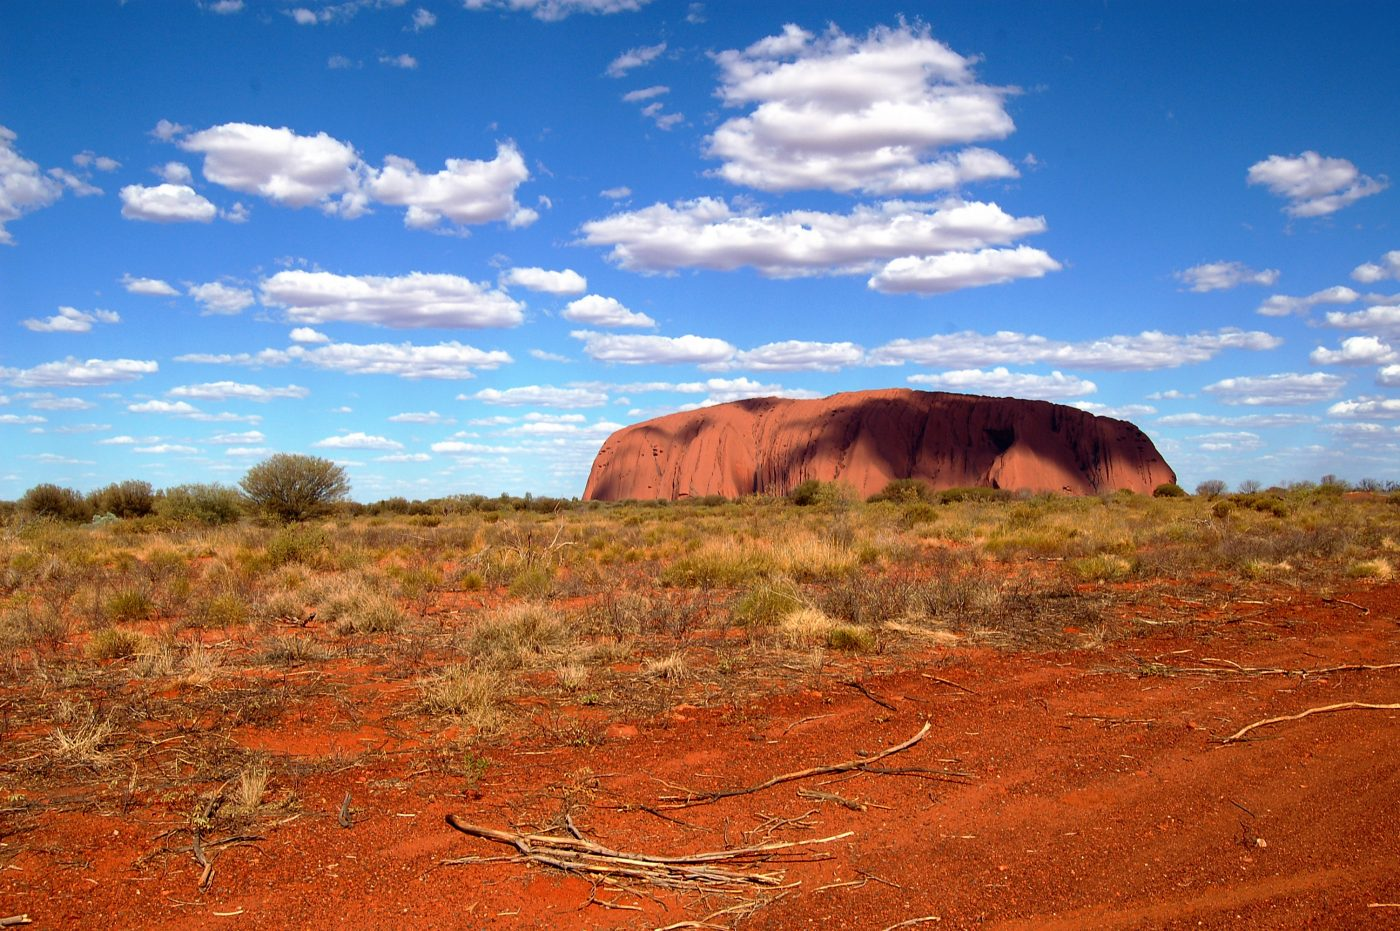 Ayers Rock Mystery in the Australian Desert